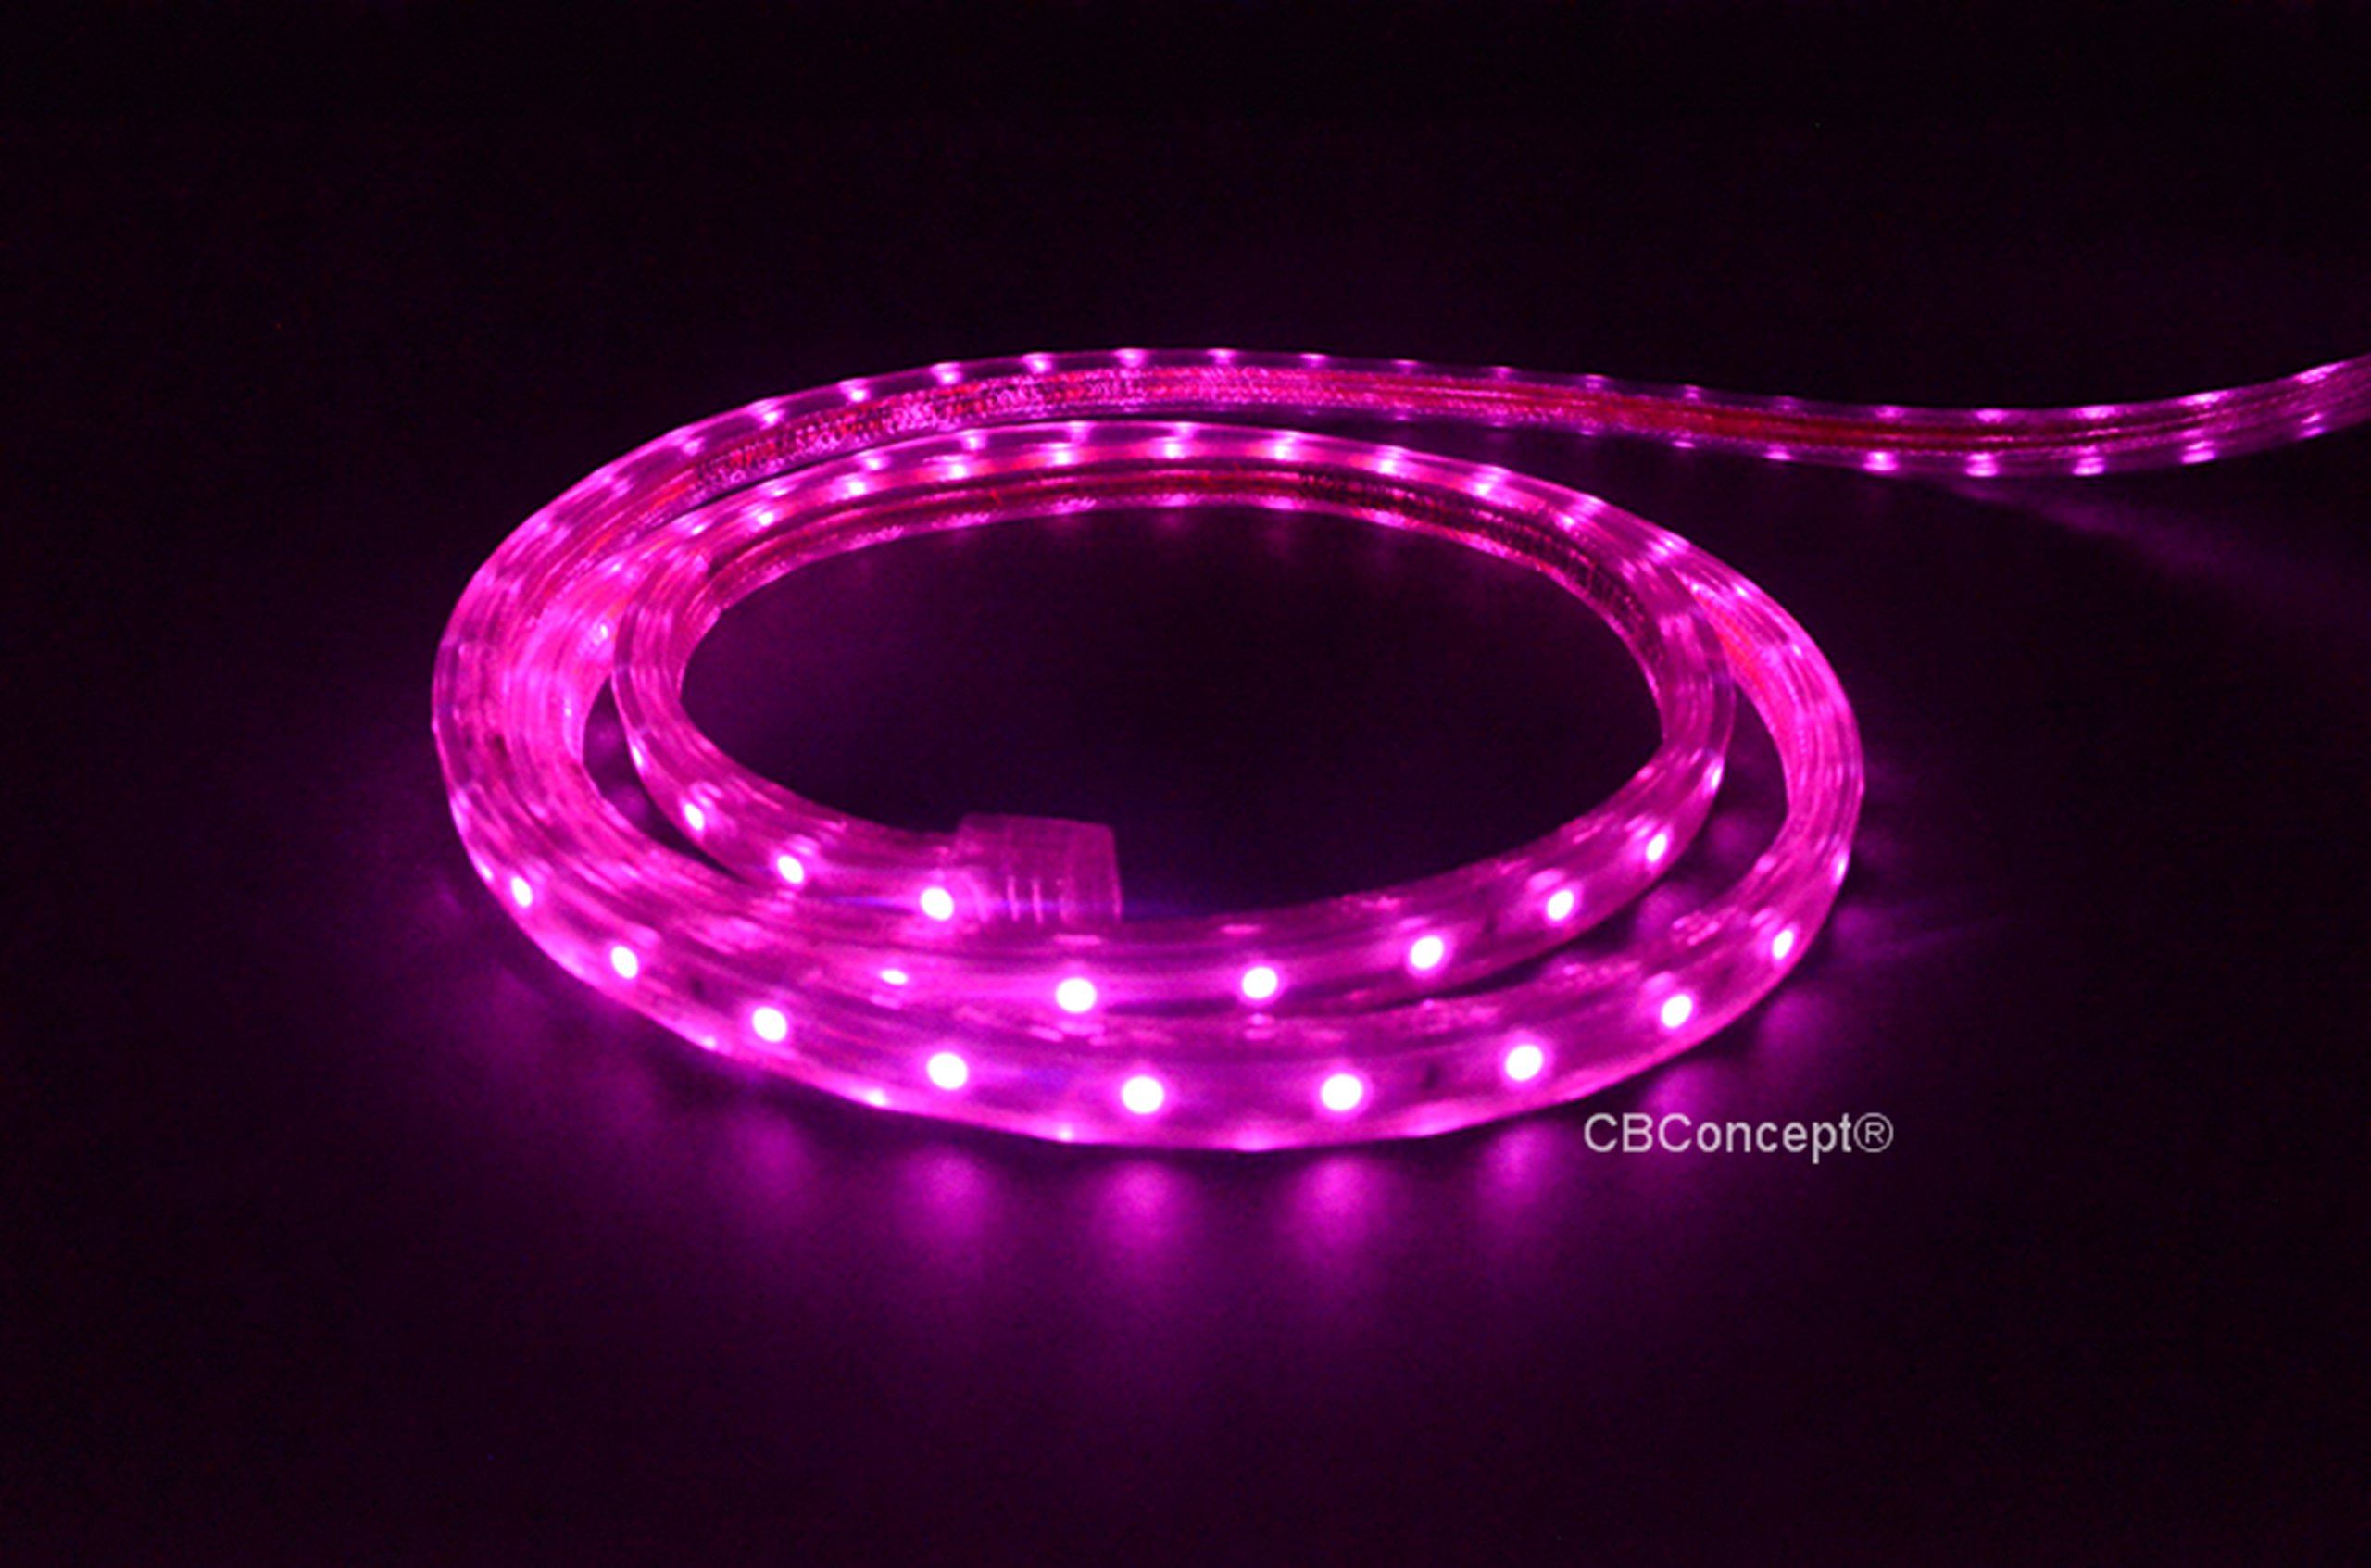 CBConcept UL Listed, 120 Feet, 13000 Lumen, Pink, Dimmable, 110-120V AC Flexible Flat LED Strip Rope Light, 2190 Units 3528 SMD LEDs, Waterproof IP65, Accessories Included, Size: 0.45 Inch Width X 0.28 Inch Thickness- [Christmas Lighting, Indoor / Outdoor